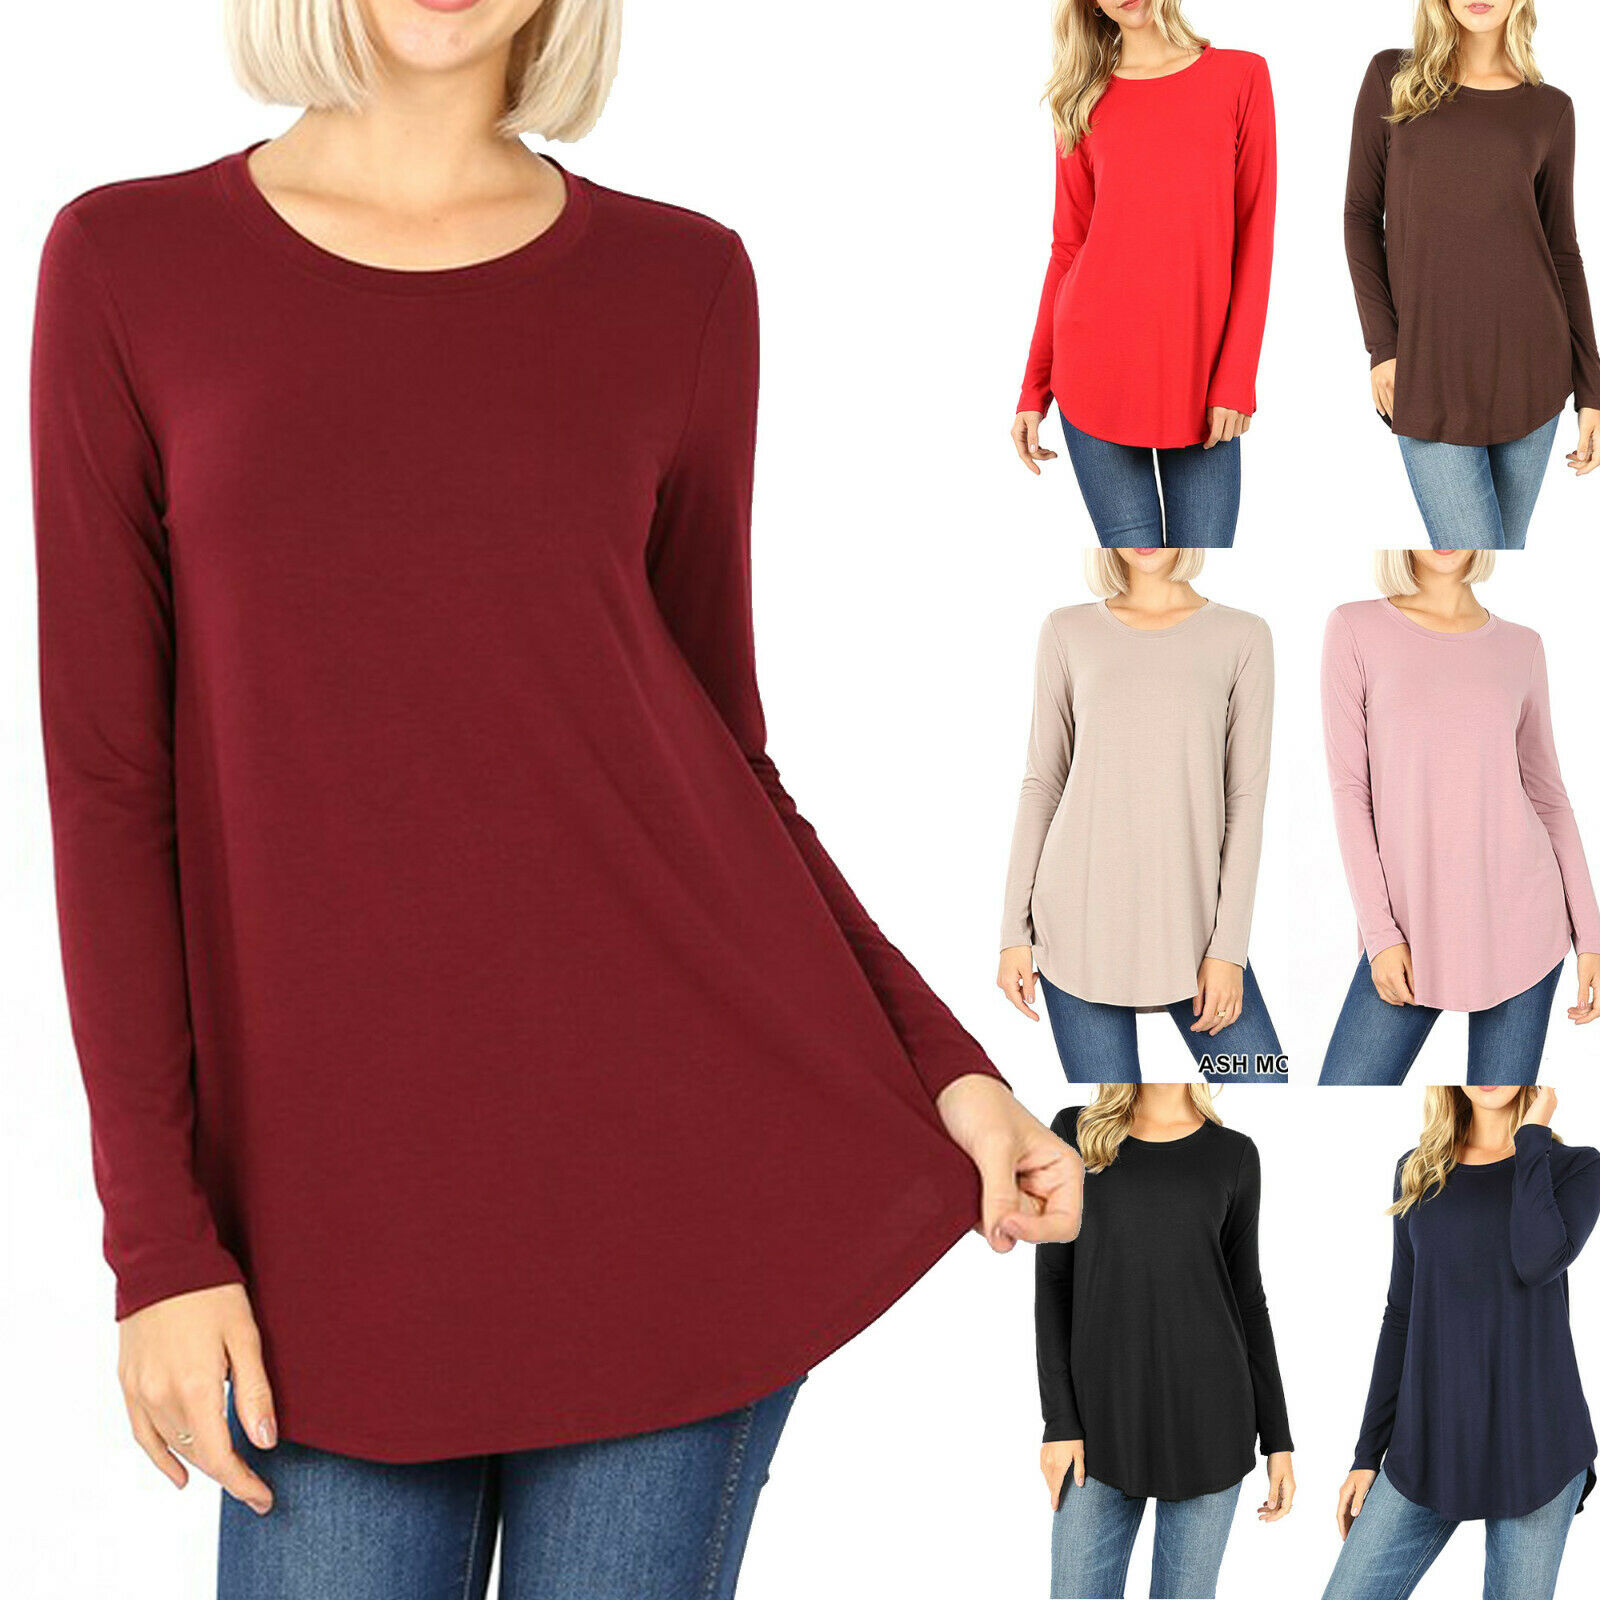 Women's Long Sleeve Tunic Top Casual Crew Neck Basic T-Shirt Blouse Loose Fit Clothing, Shoes & Accessories